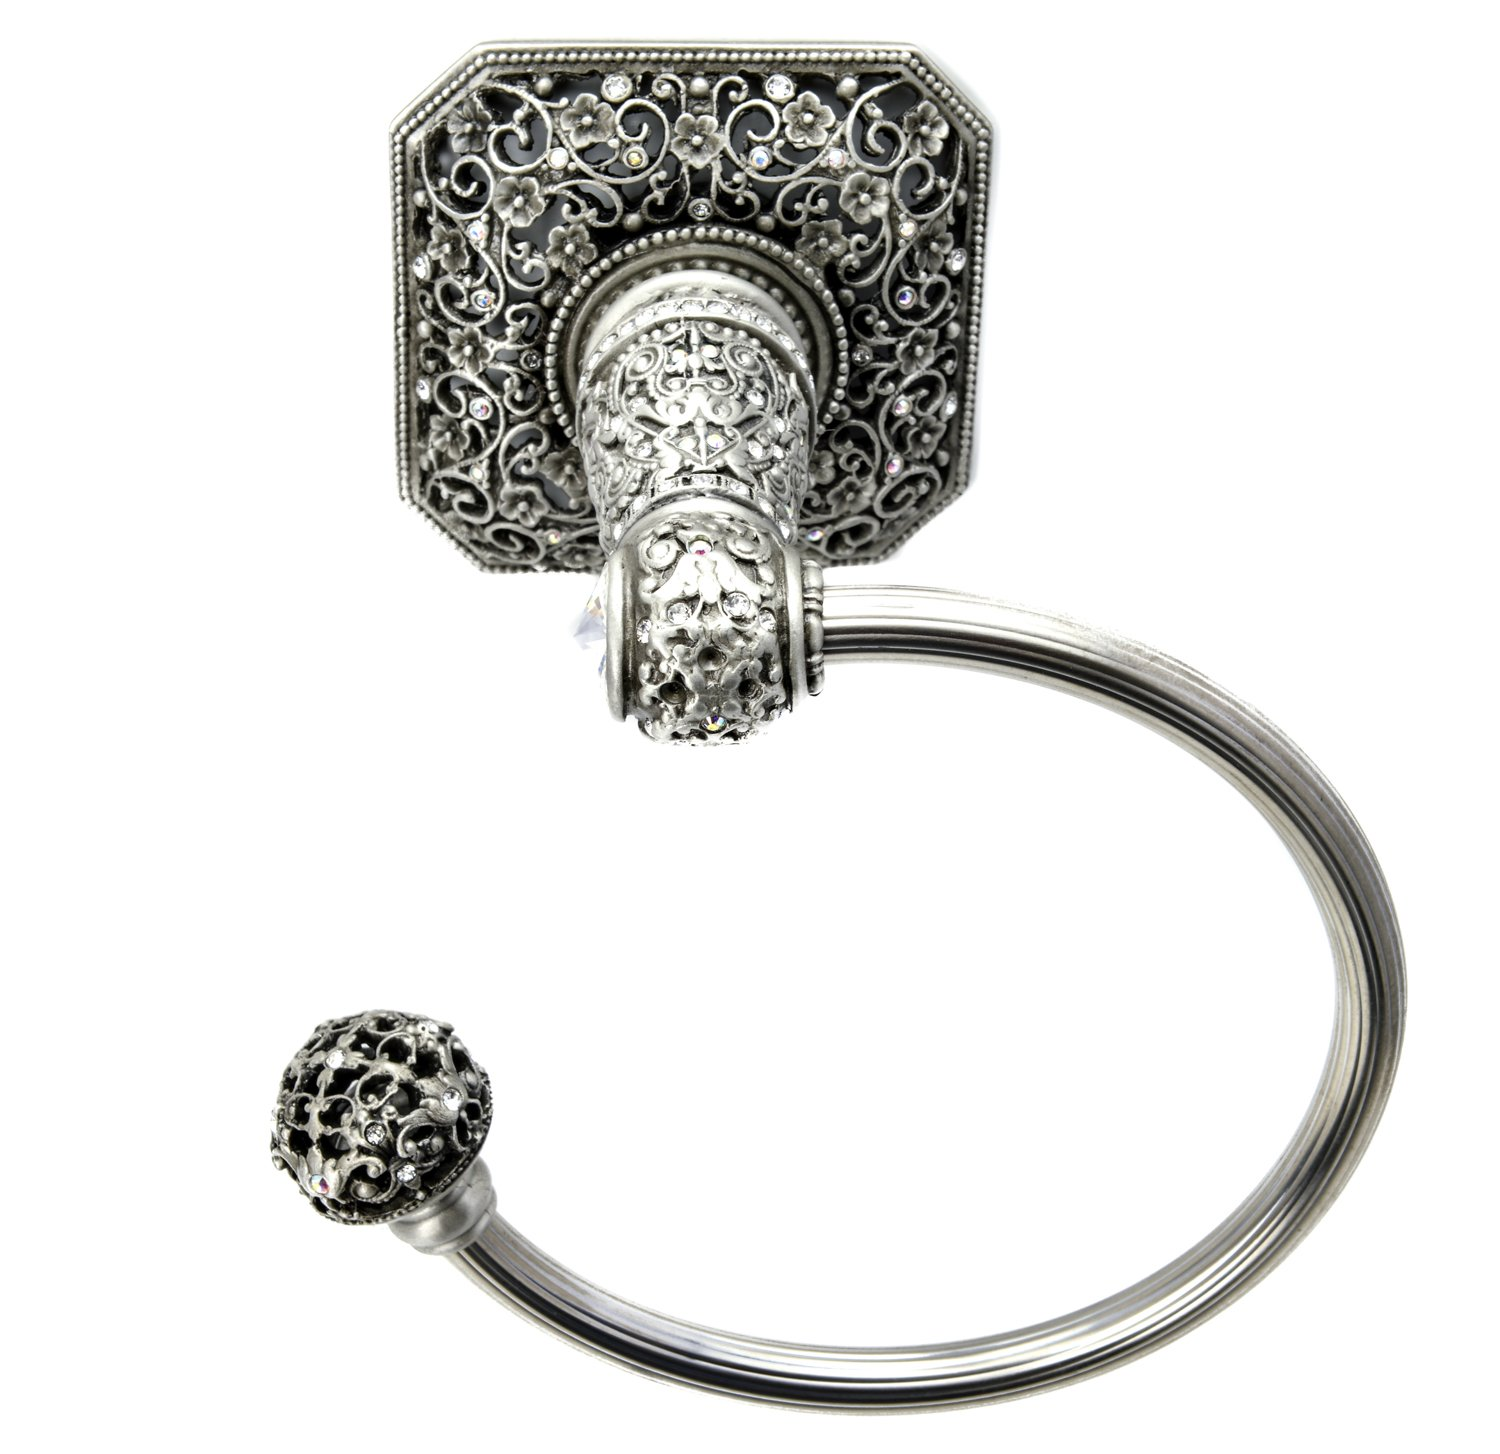 Carpe Diem Hardware 4058-11 Cab Juliane Grace Towel Ring Left Made with Swarovski Elements, Satin by Carpe Diem Hardware